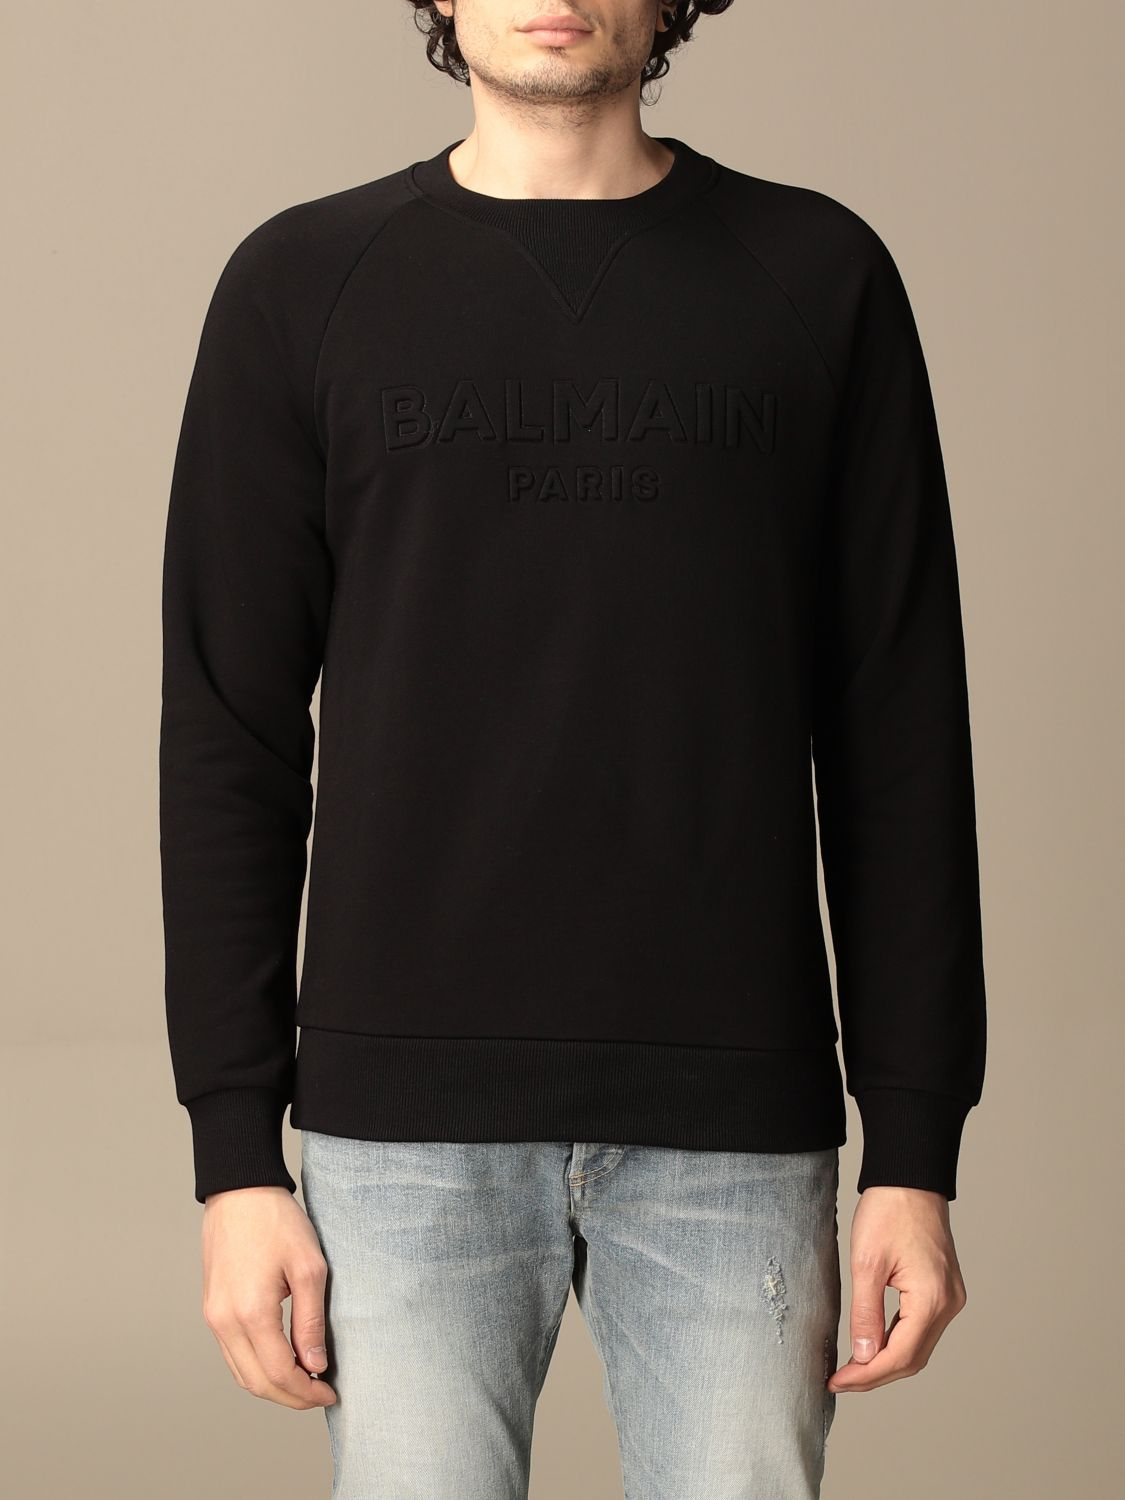 Sweatshirt Balmain: Balmain cotton sweatshirt with logo black 1